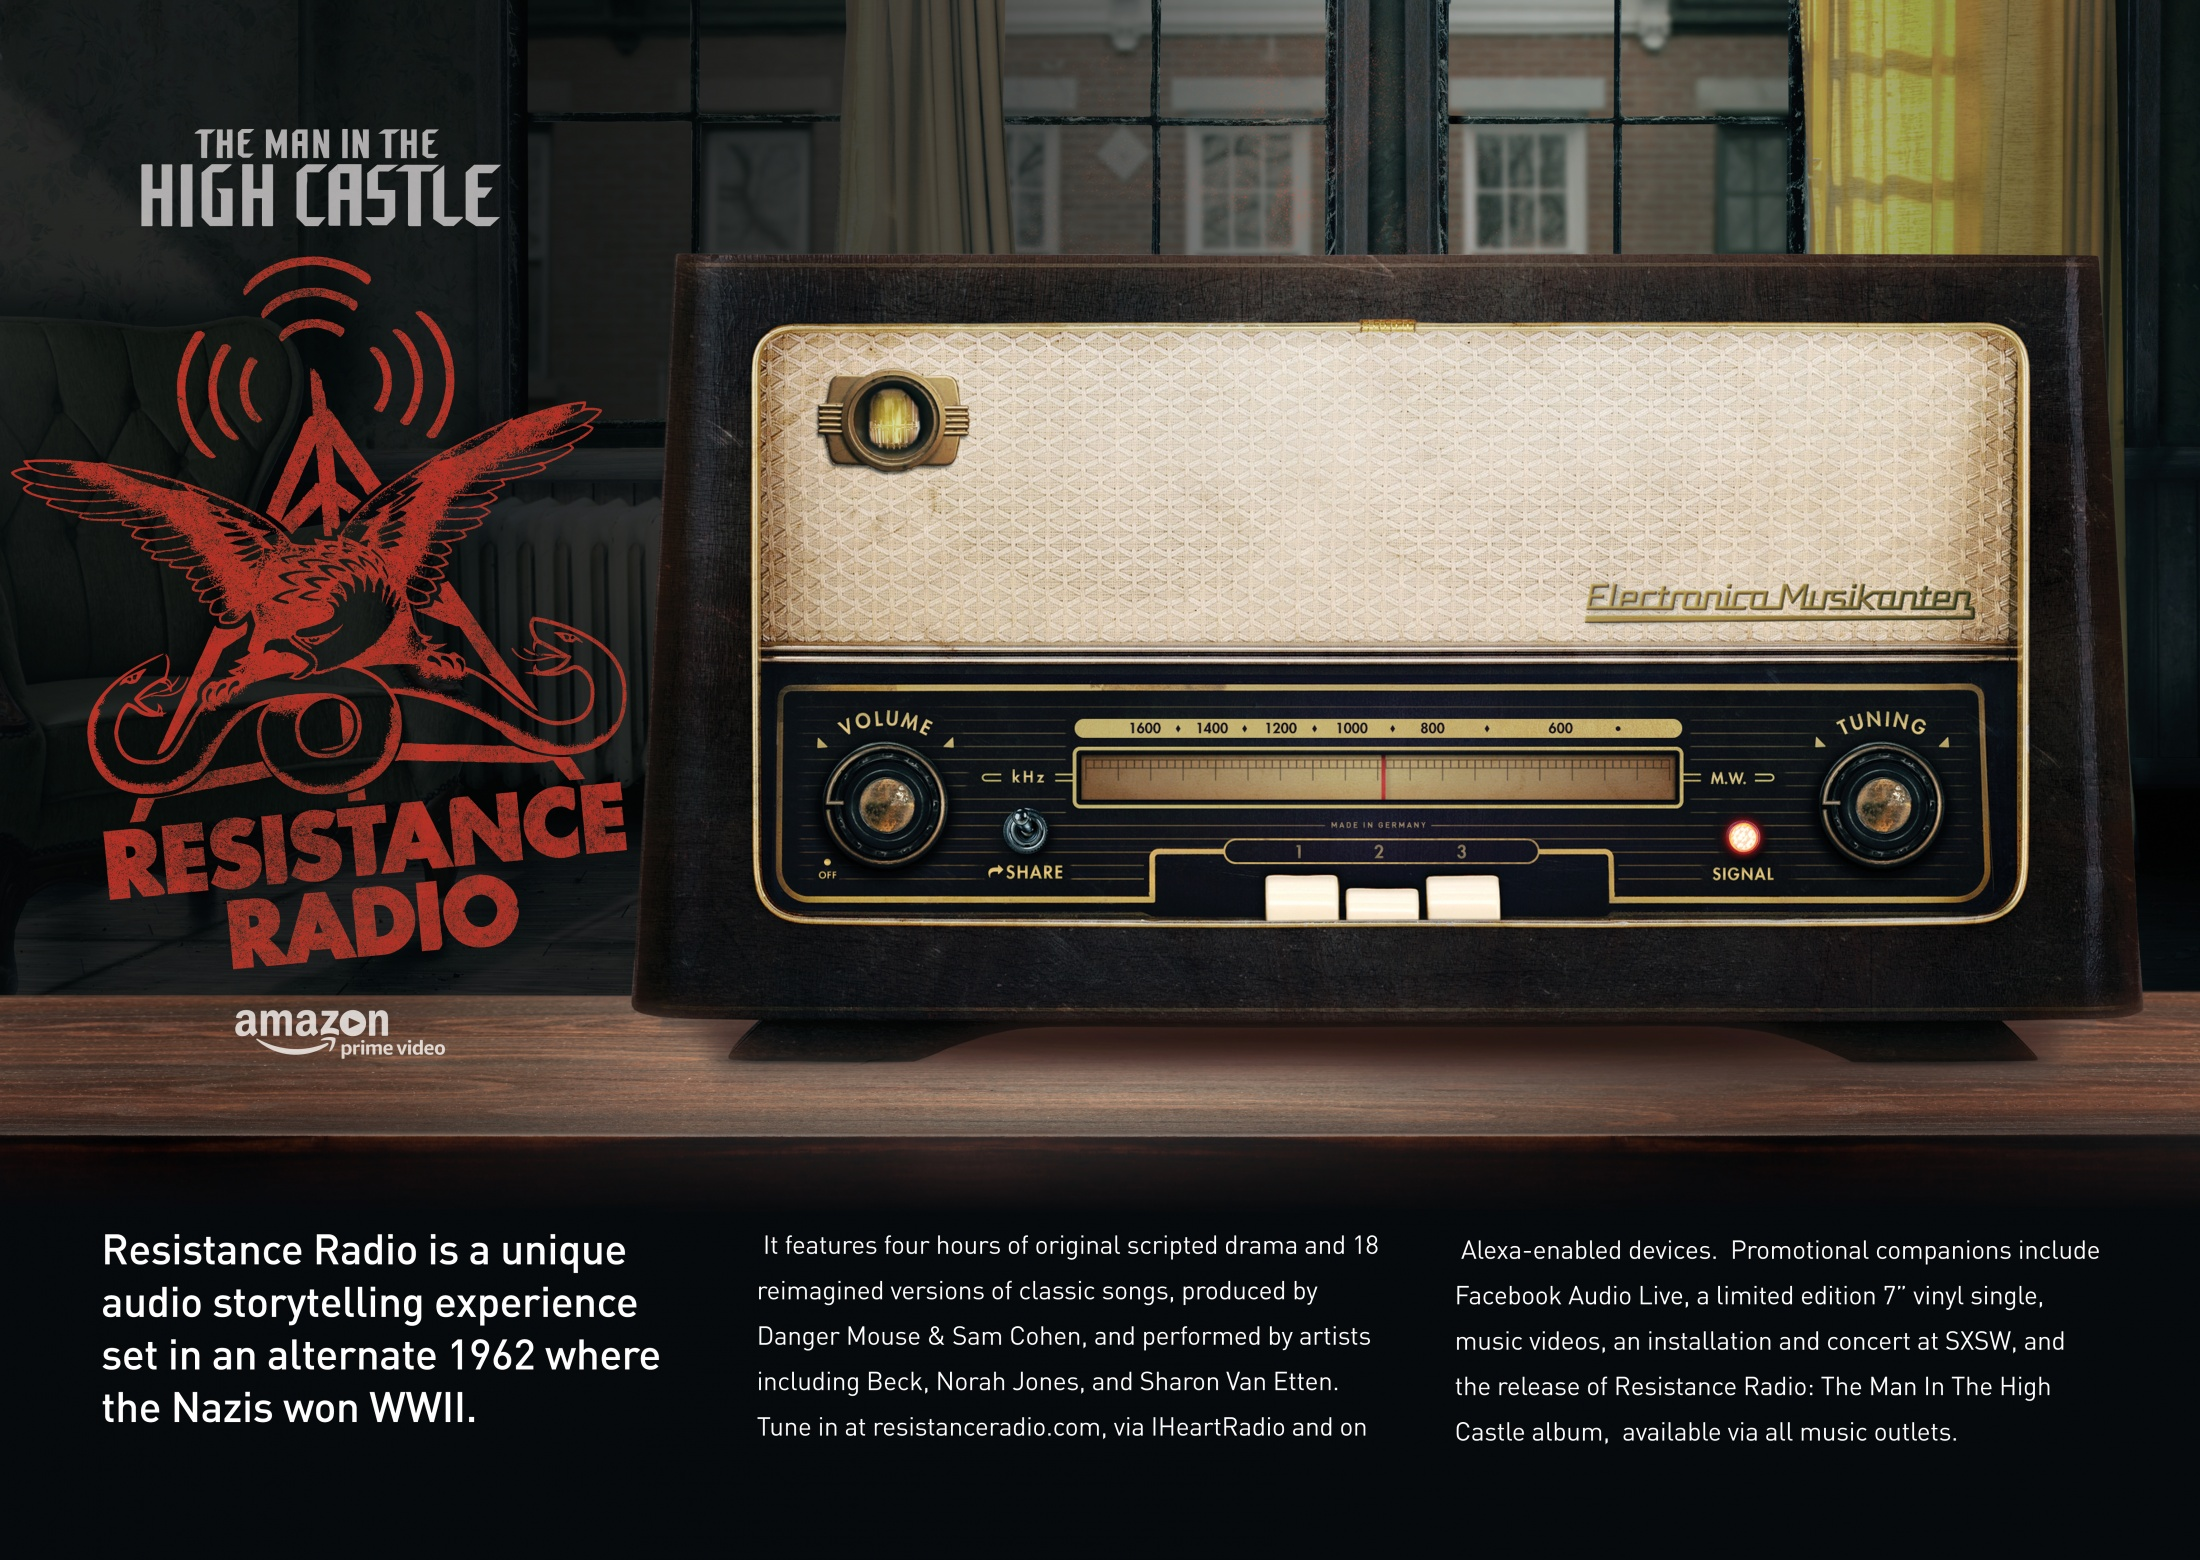 Image Media for The Man in the High Castle: Resistance Radio